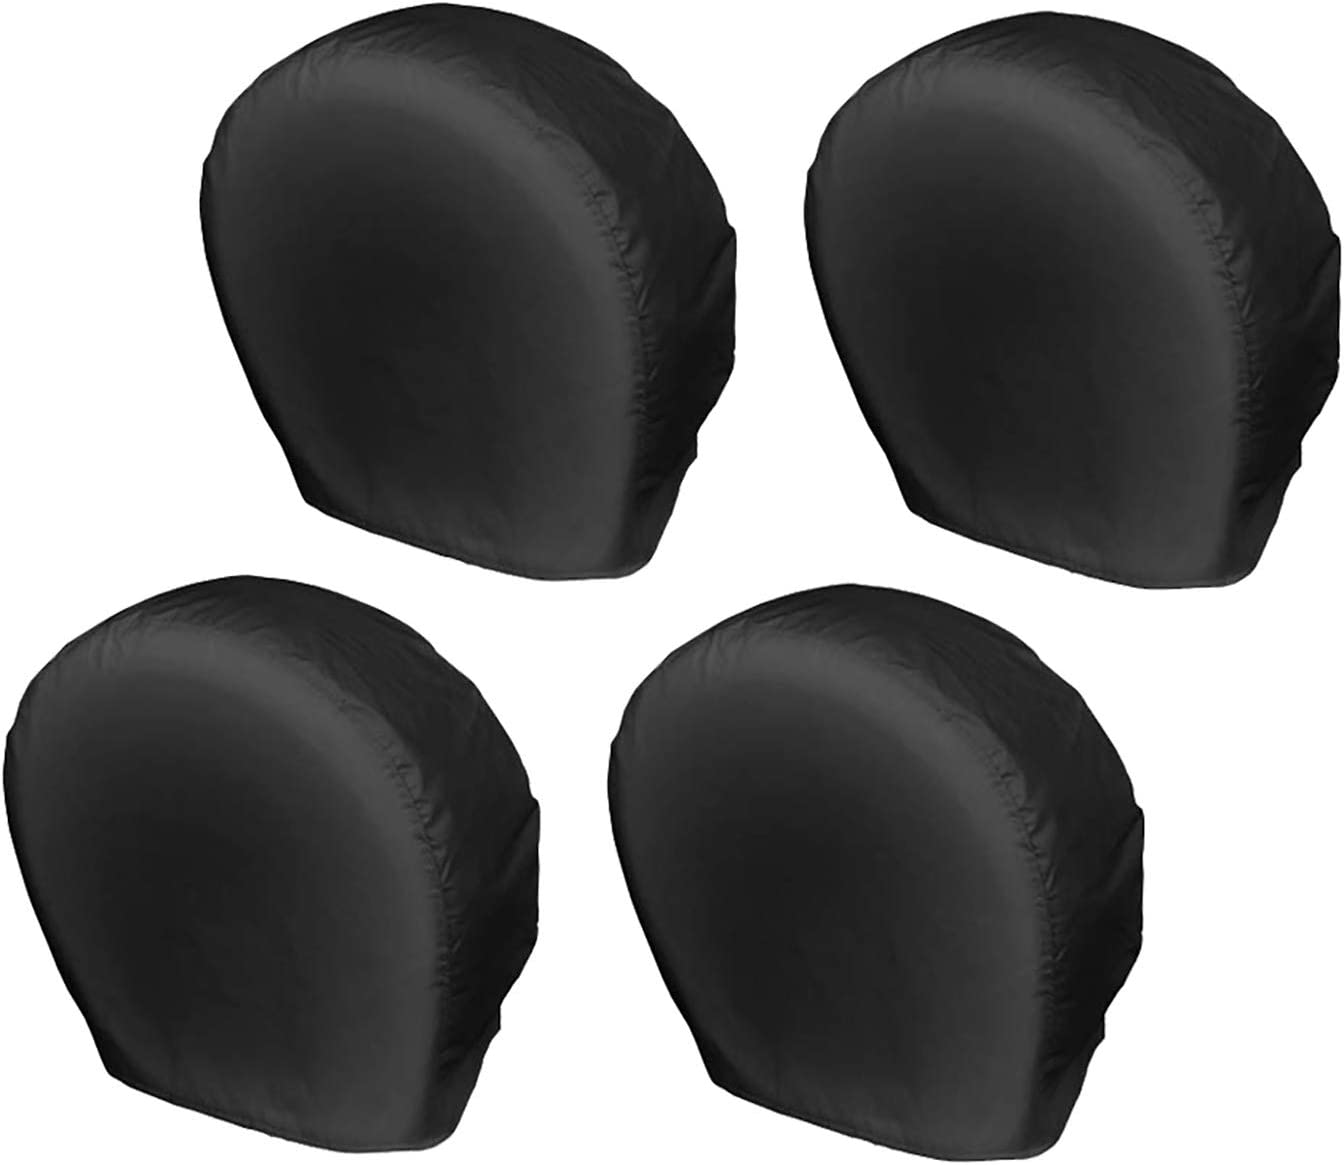 Explore Land Tire Covers 4 Pack - Tough Tire Wheel Protector for Truck, SUV, Trailer, Camper, RV - Universal Fits Tire Diameters 26-28.75 inches, Black